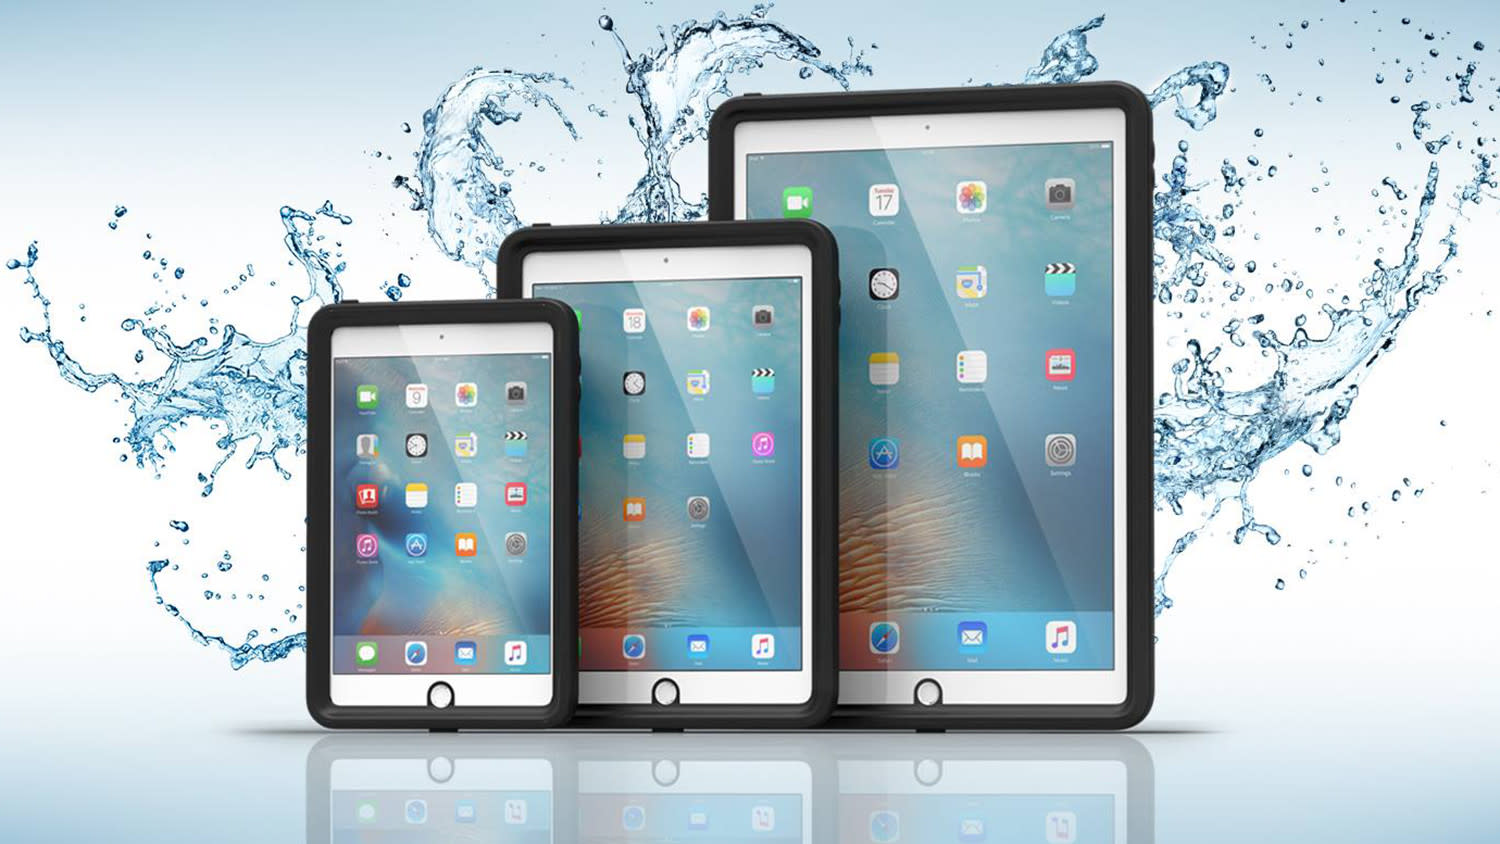 Don't get all wet — slap this limited edition waterproof case on your iPad